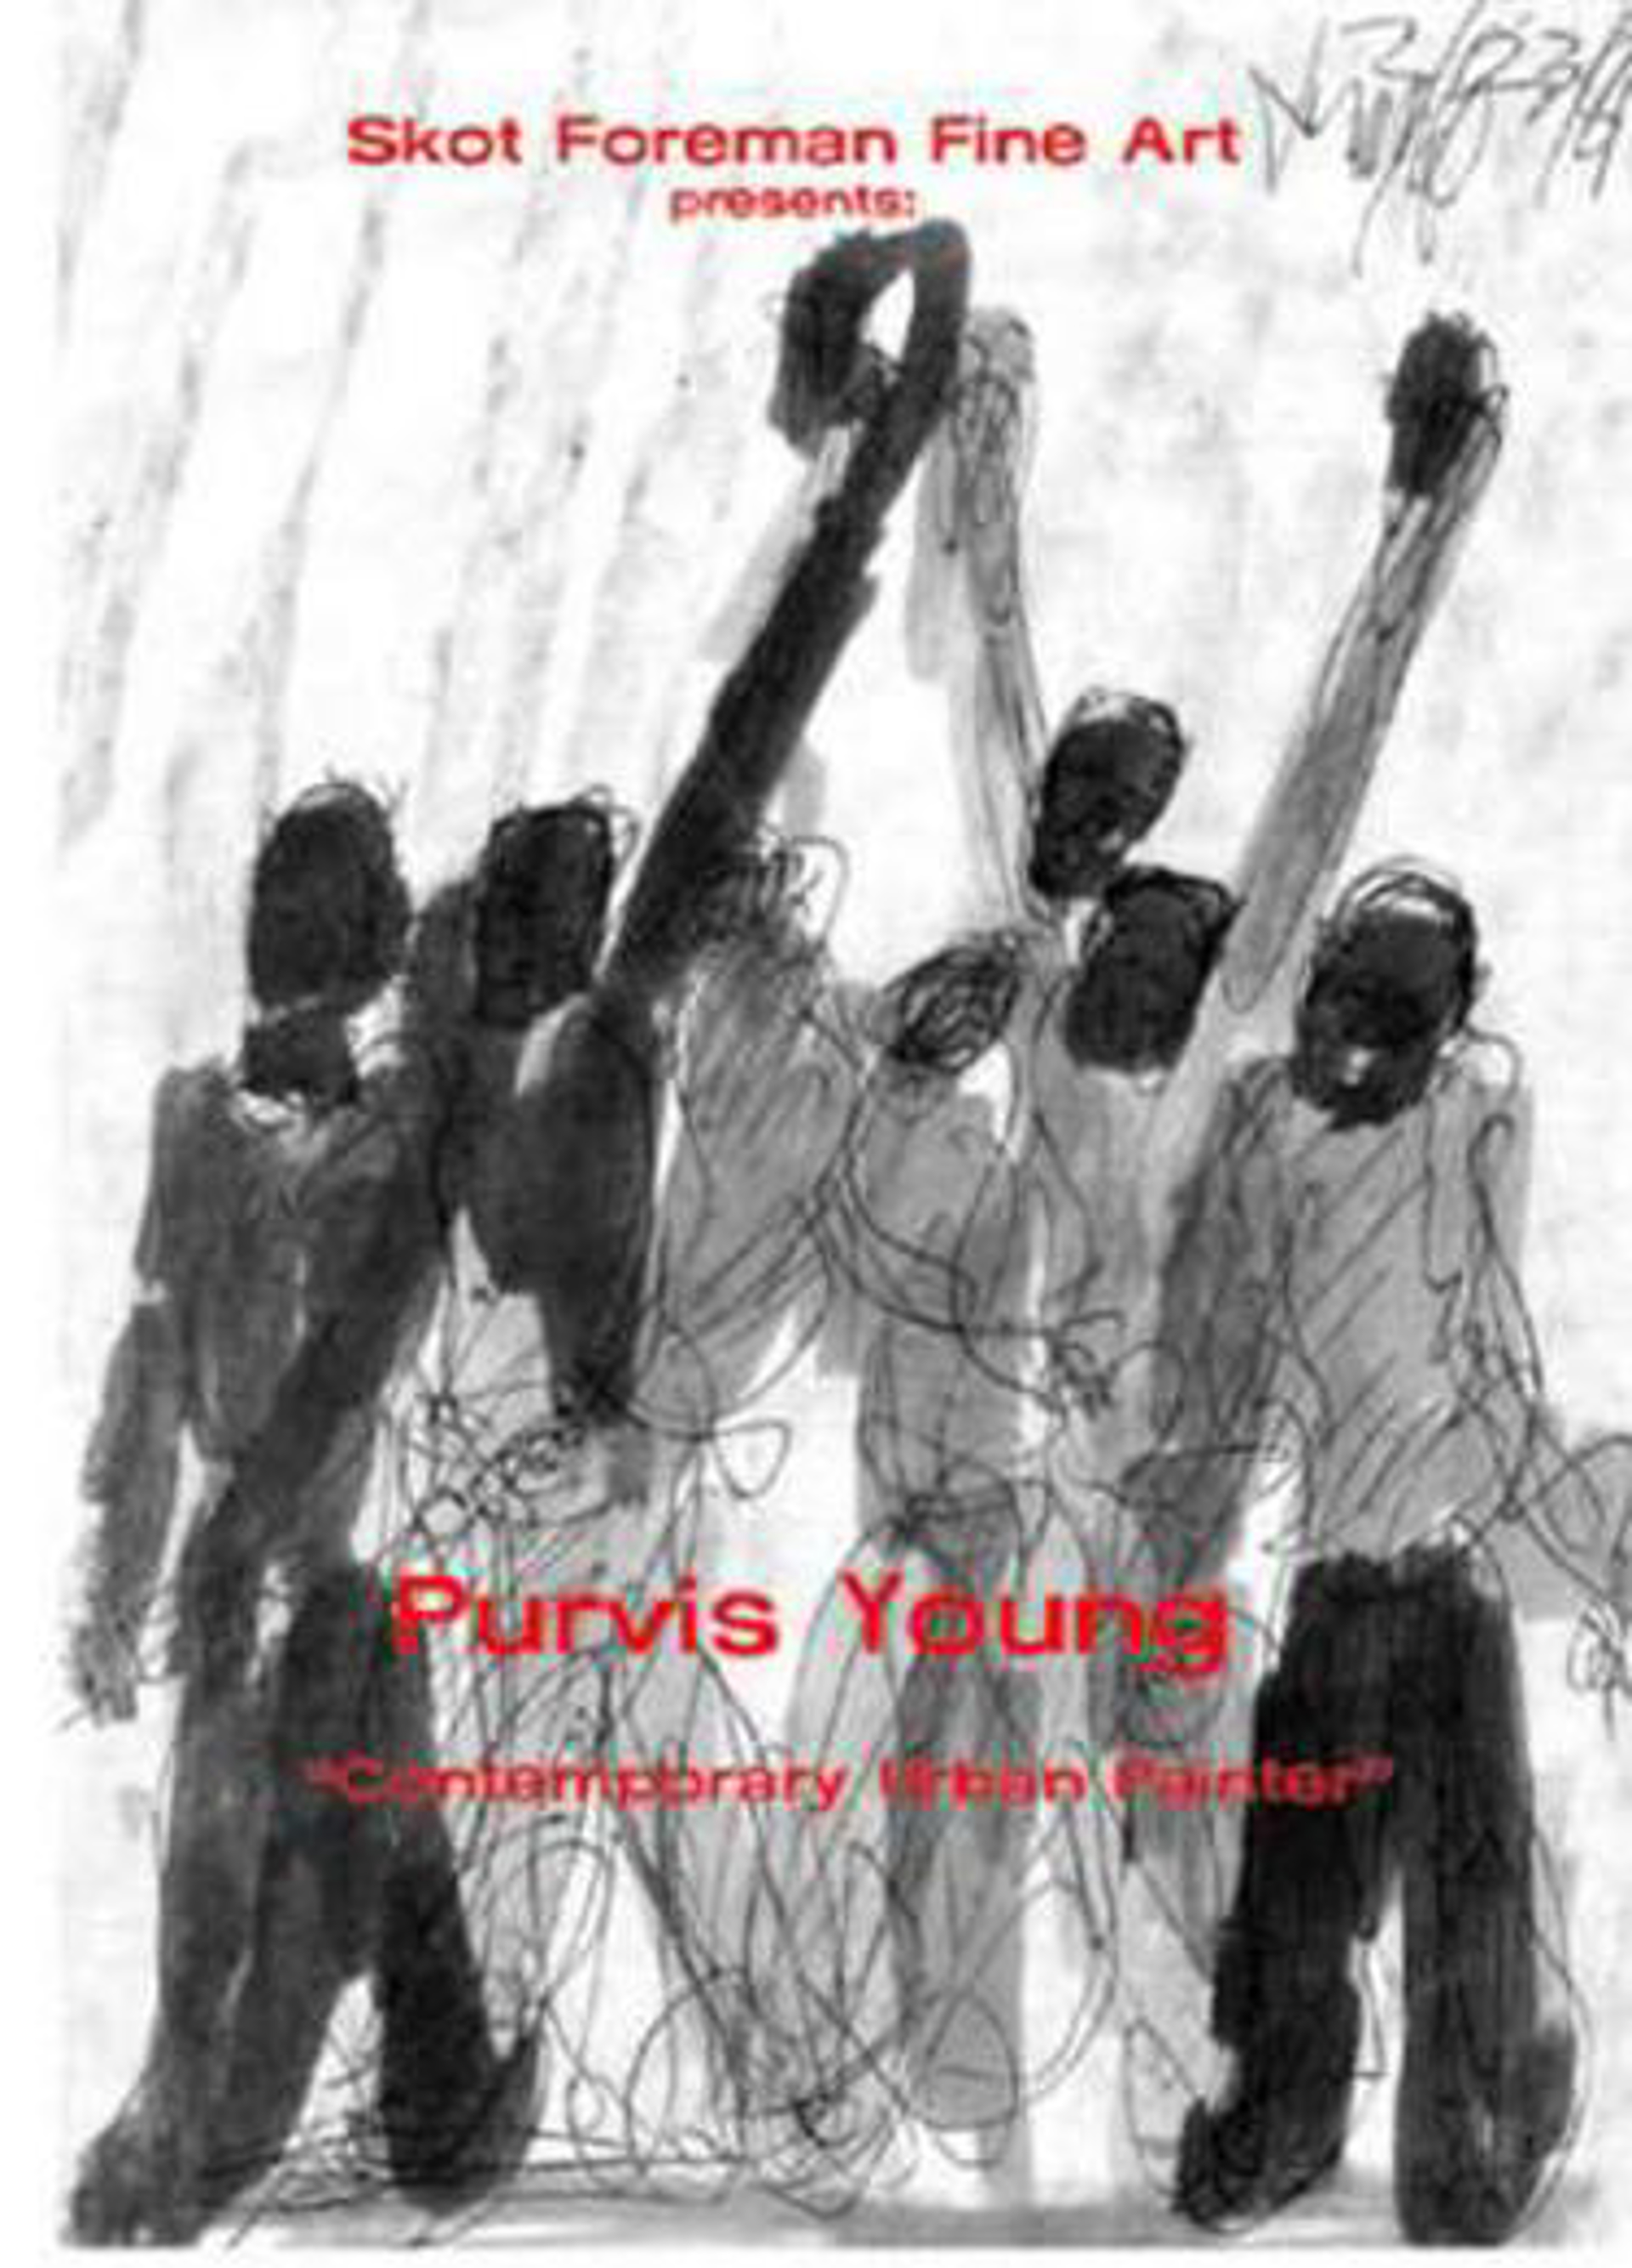 Purvis Young: Contemporary Urban Painter by Purvis Young